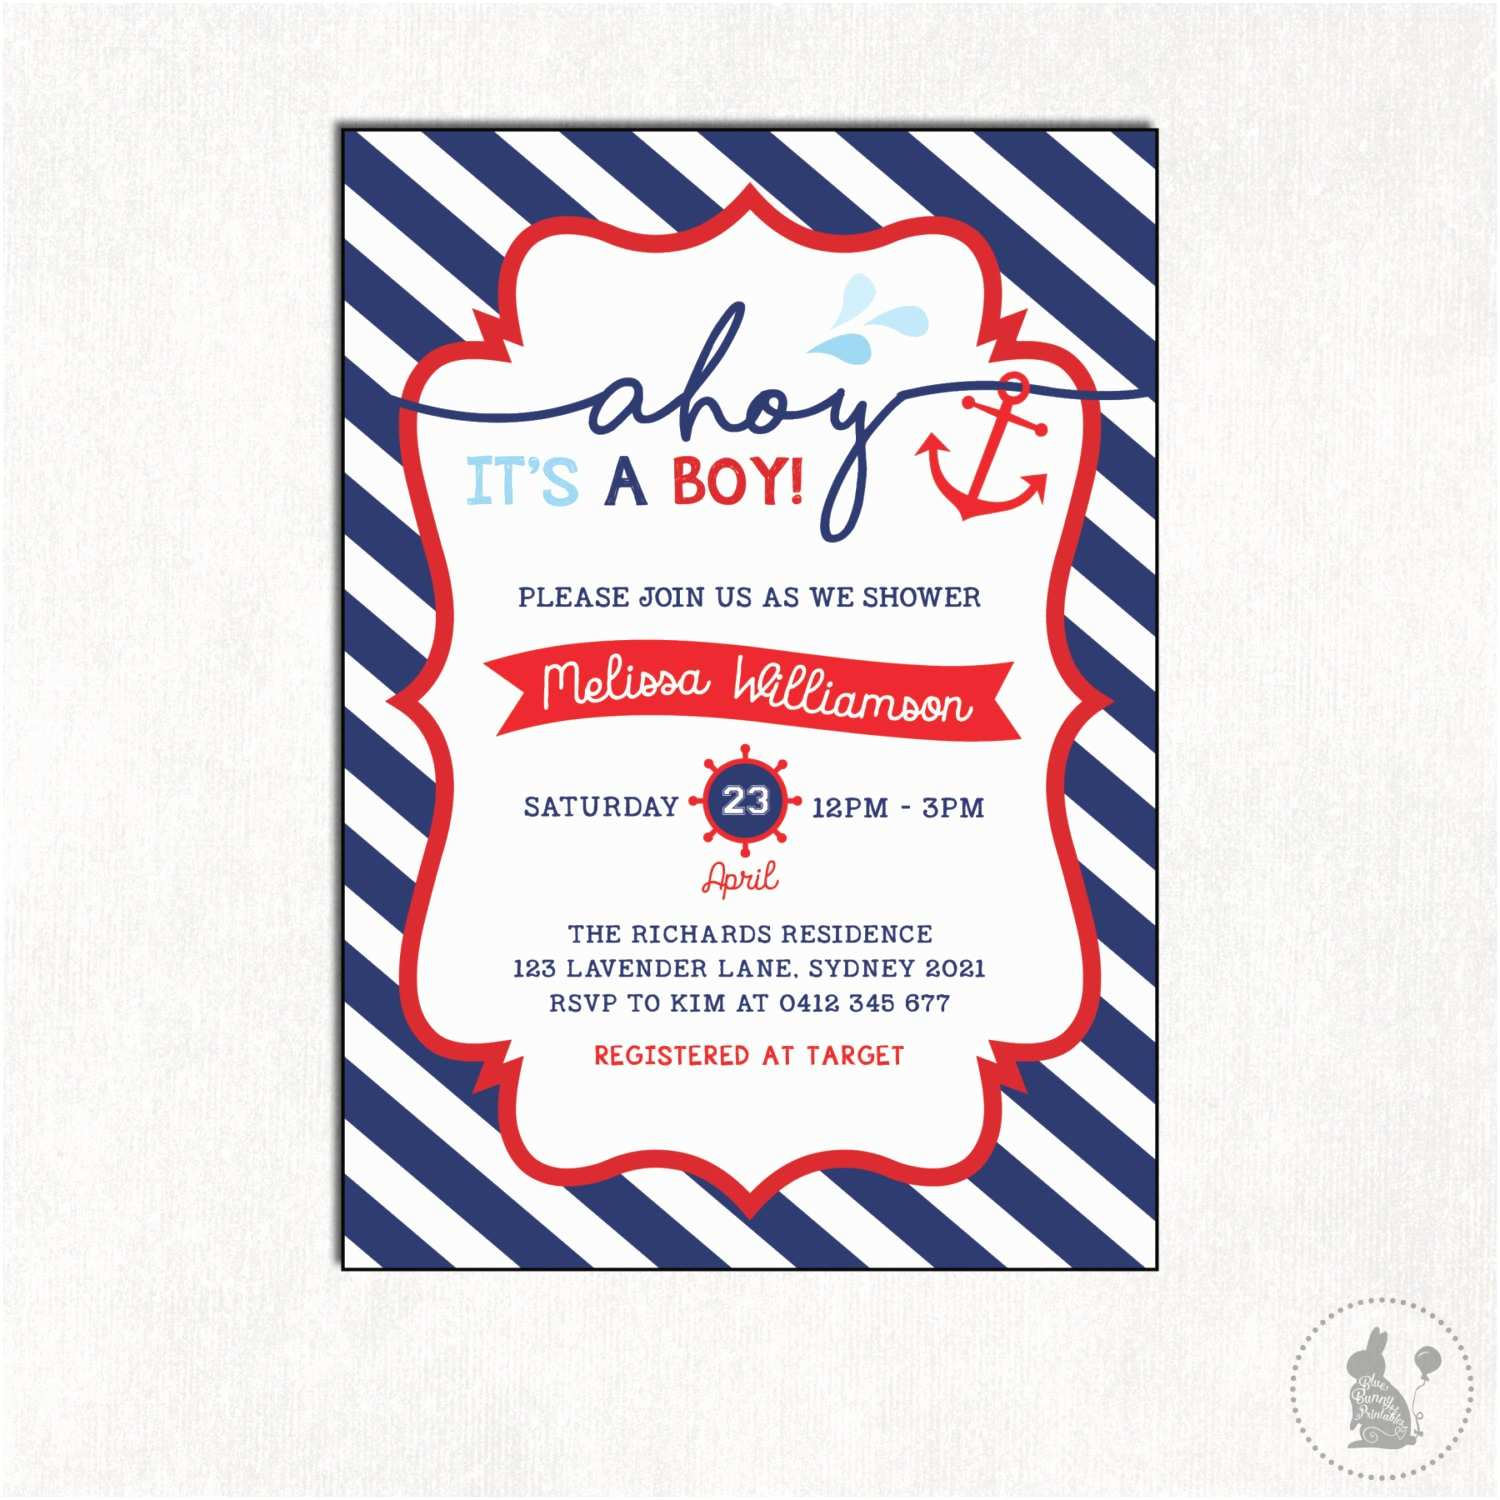 Sailor Baby Shower Invitations Nautical Baby Shower Invitation Boy Baby Shower Digital